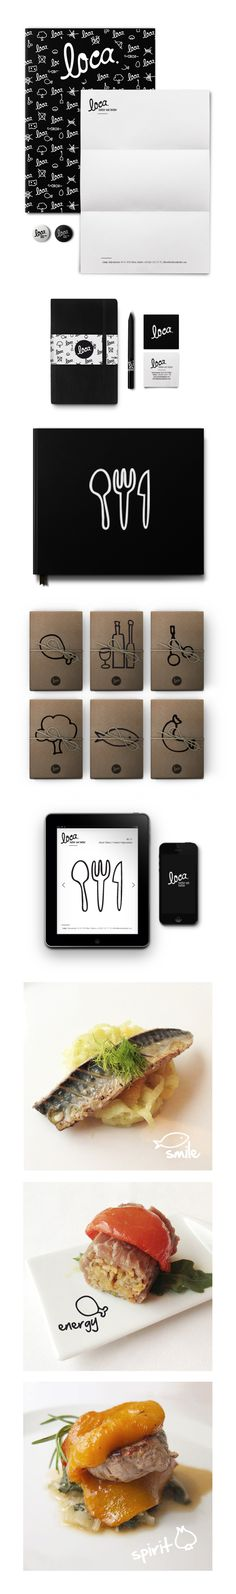 identity / food / restaurant / Loca. by iamcps #branding #design